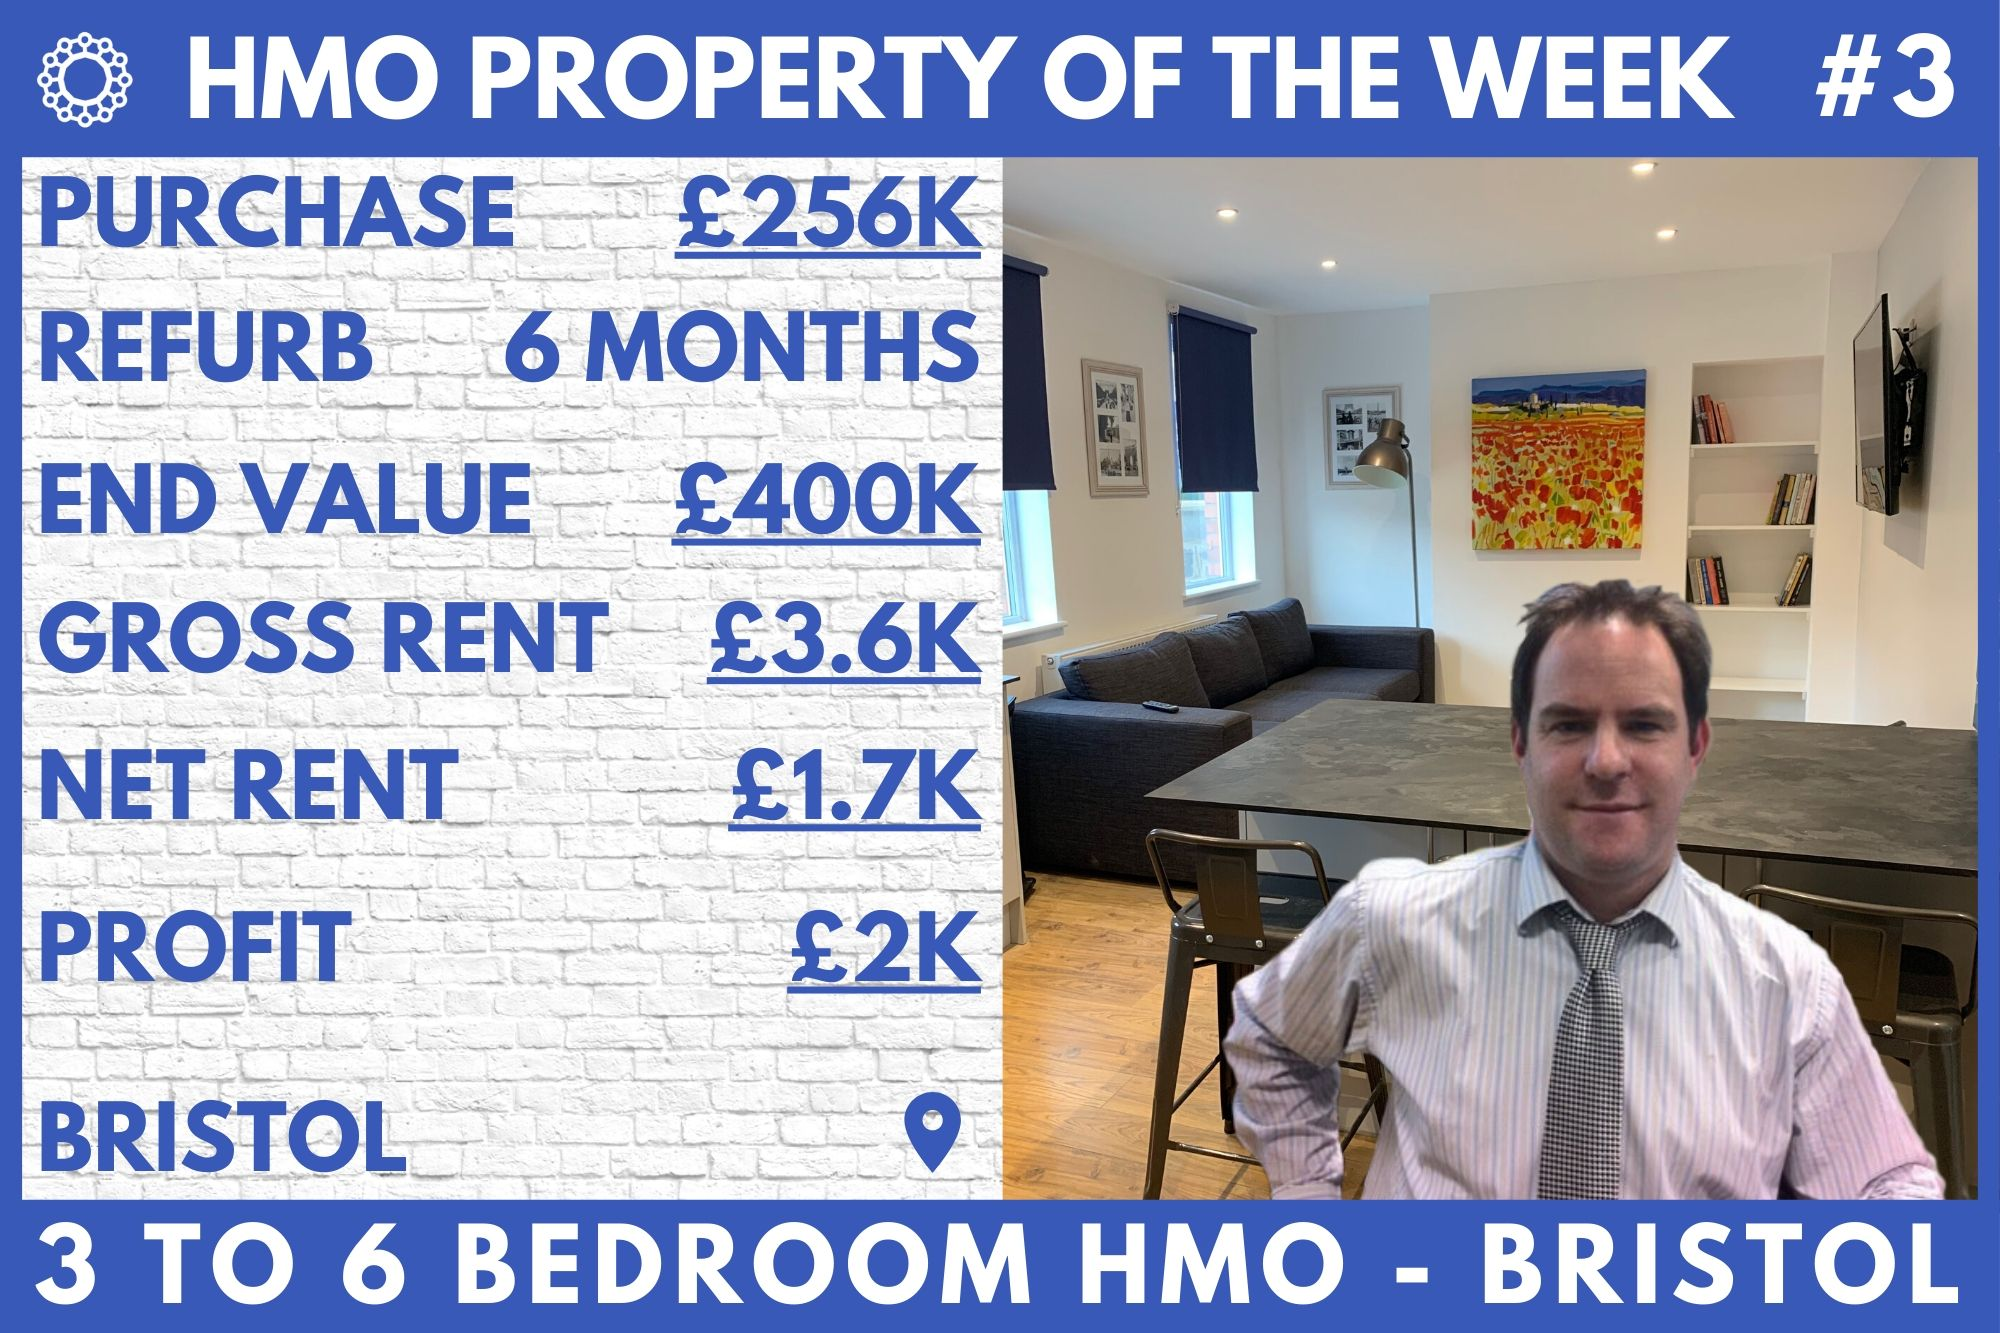 HMO of the week